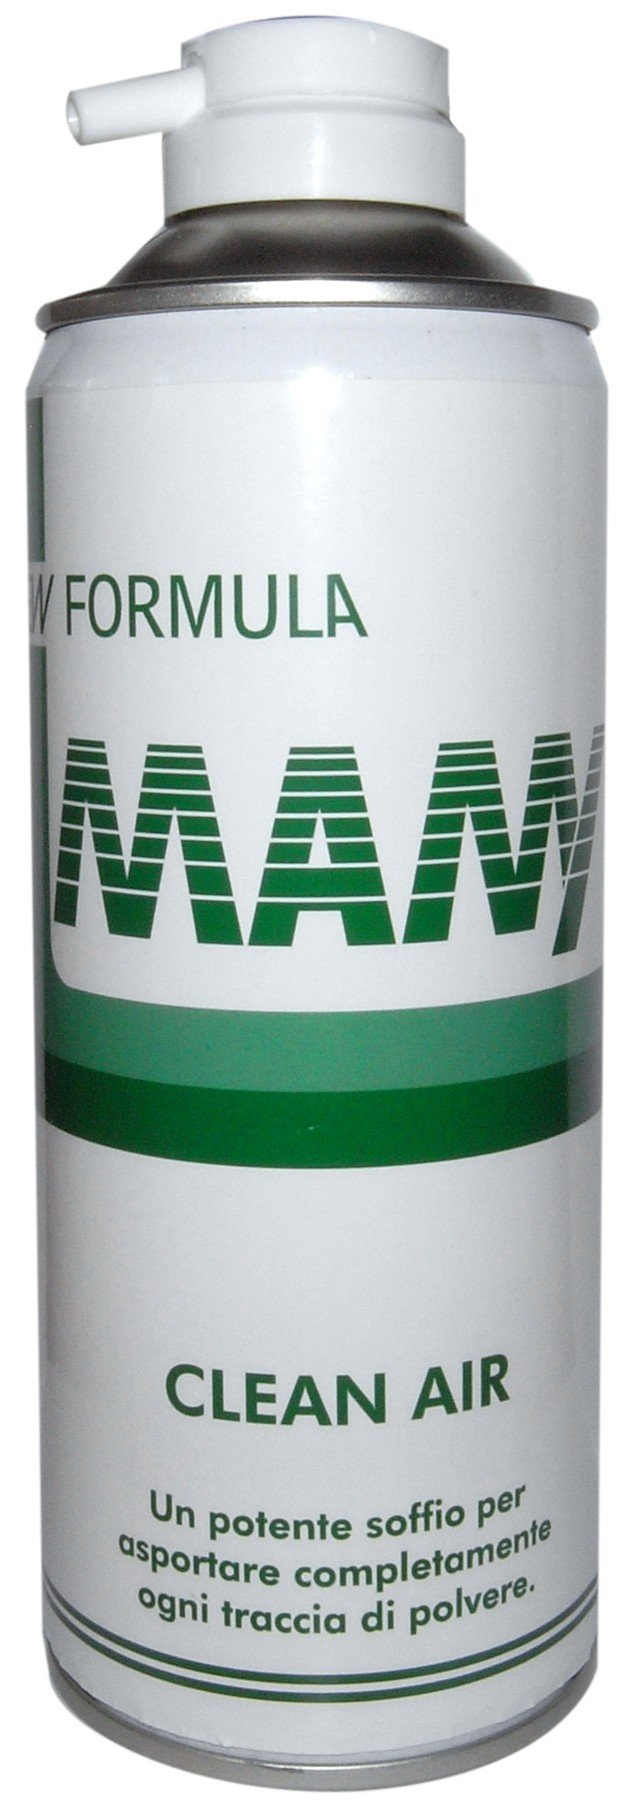 Mamy Bomboletta Aria Compressa Mix da 400ml, Bianco